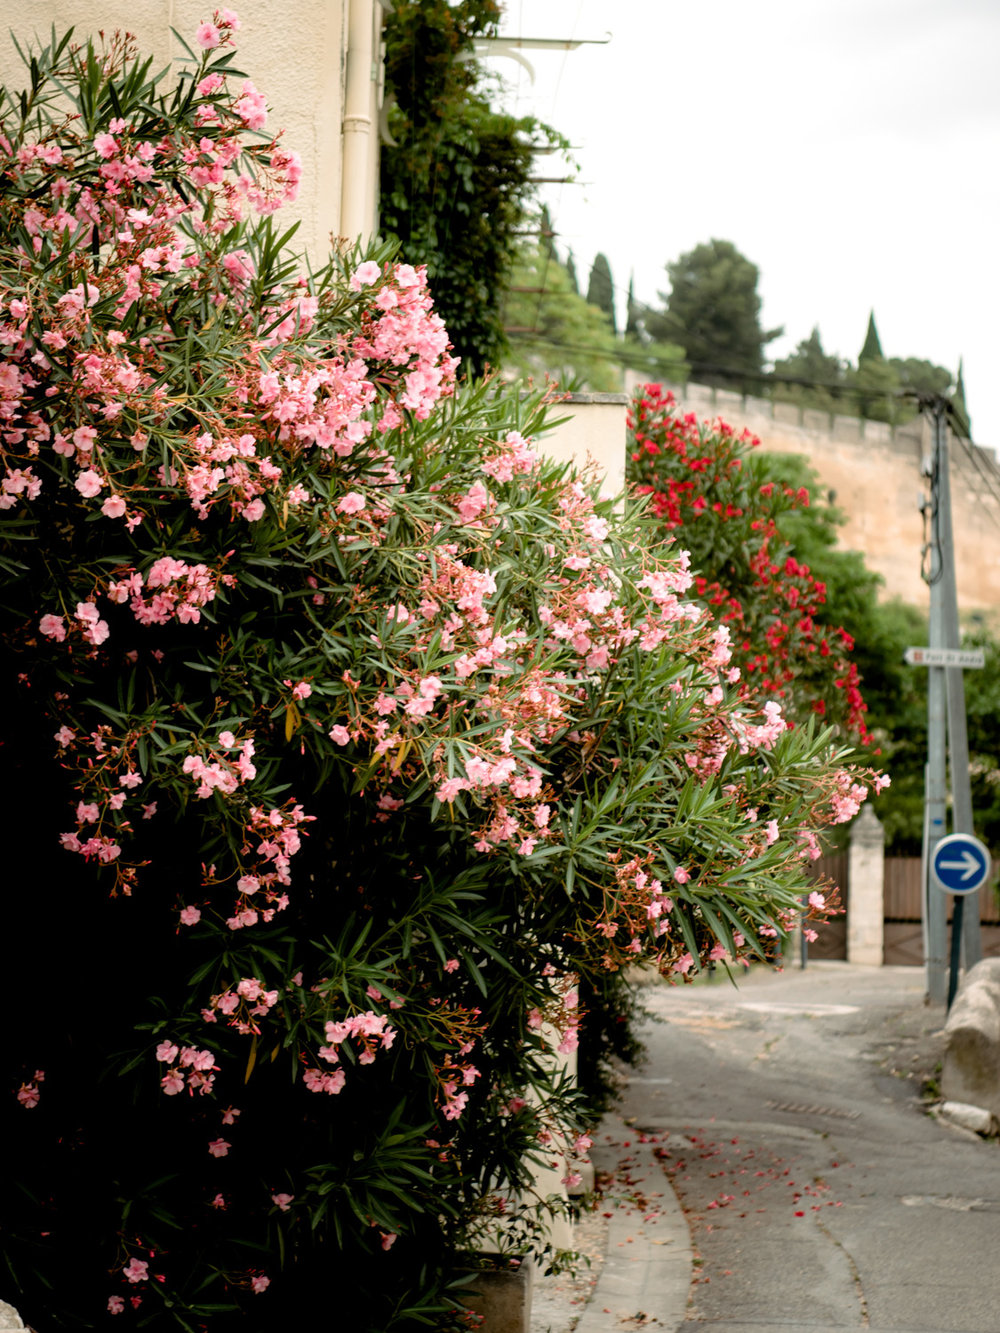 More beautiful flowers in Villeneuve-lès-Avignon.